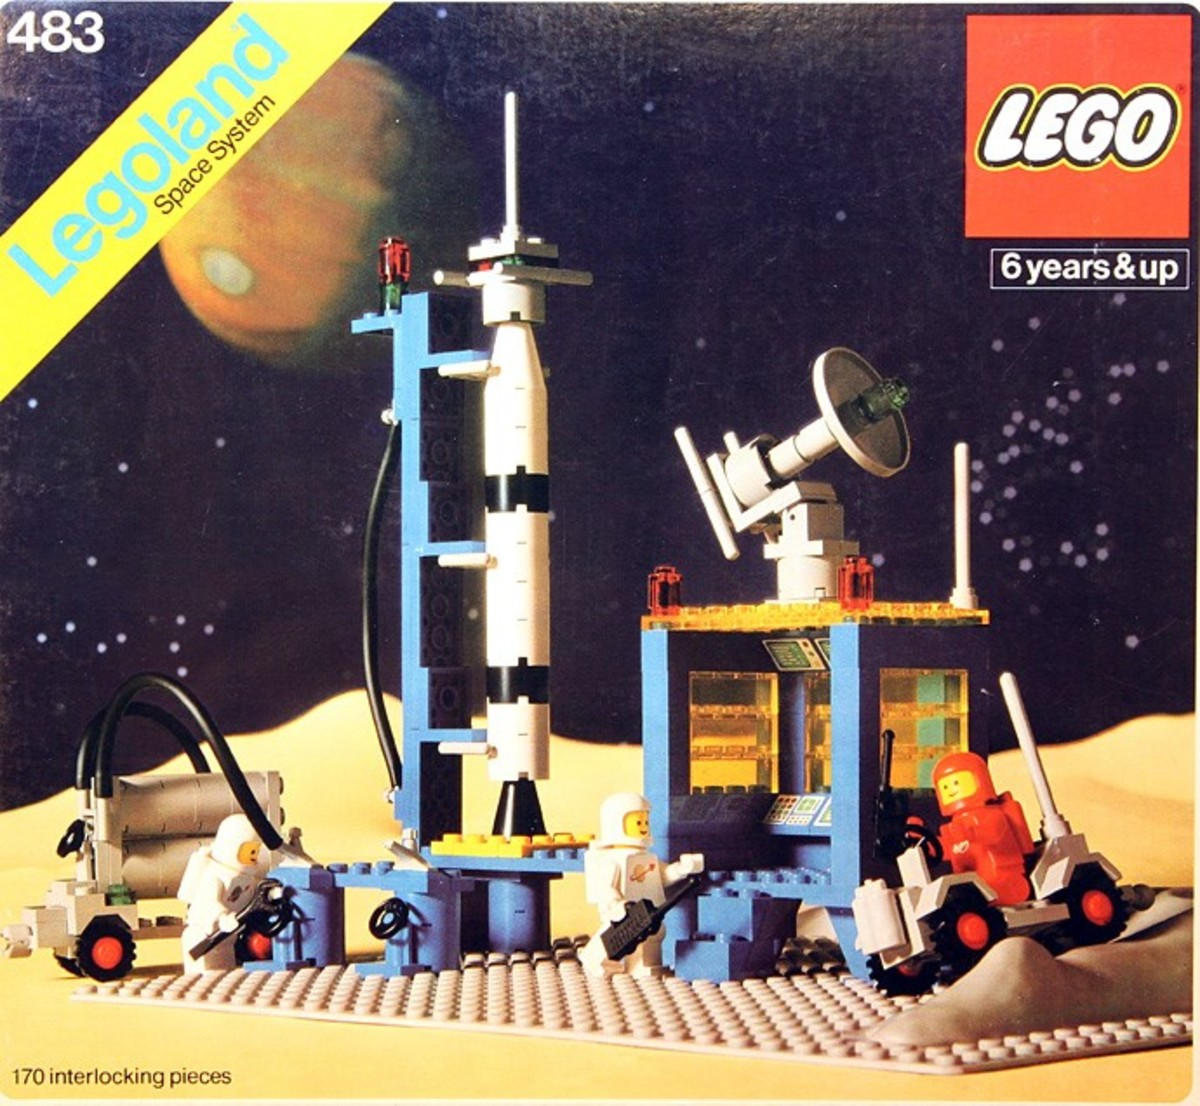 No doubt inspired by the Saturn V Rocket.